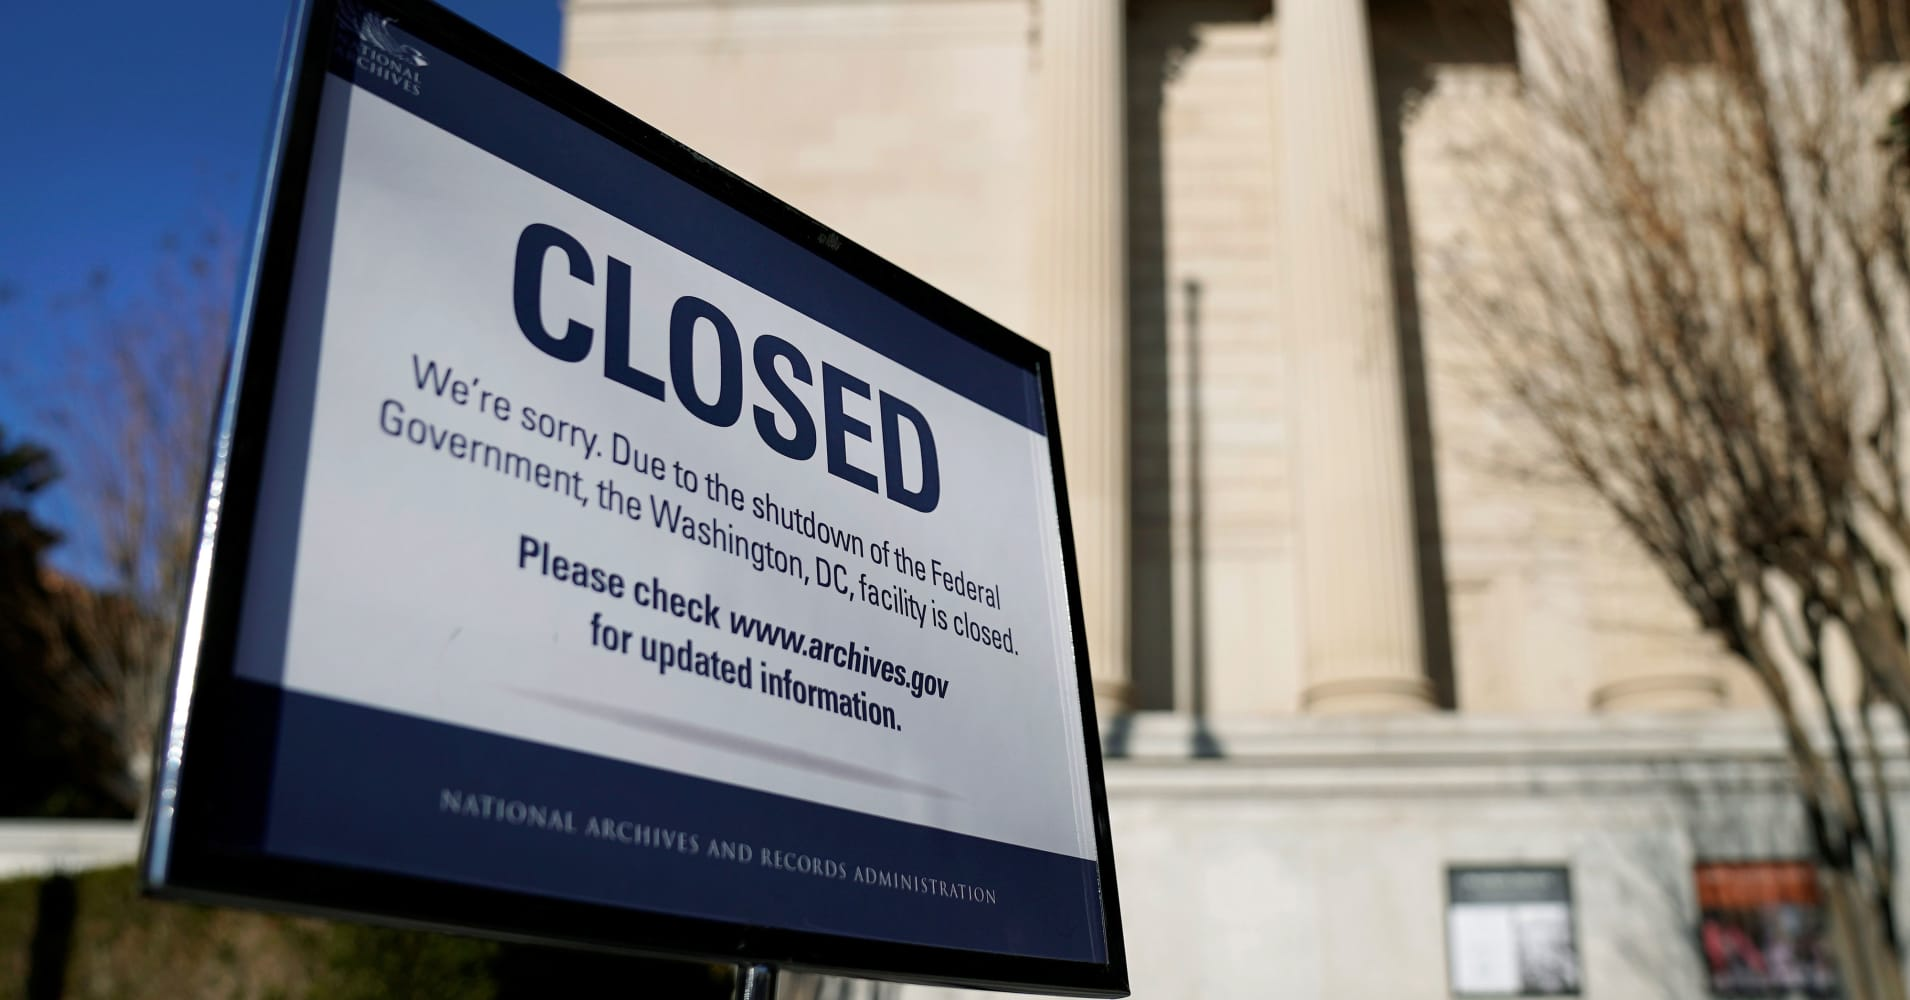 These states are most affected by the government shutdown, study finds